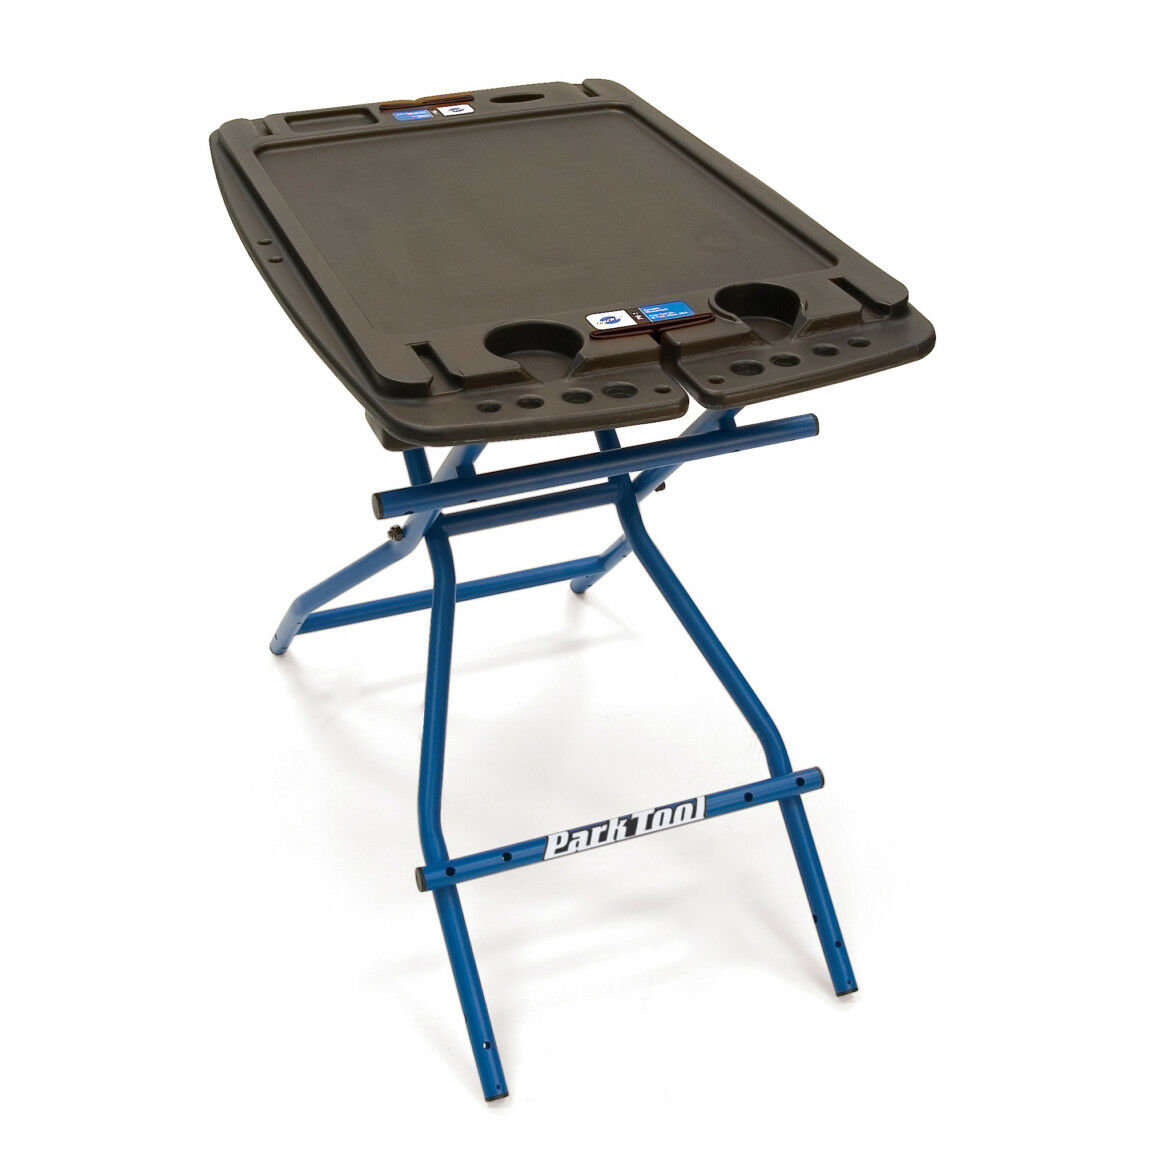 Park Tool PB-1 Portable  Workbench  shop clearance